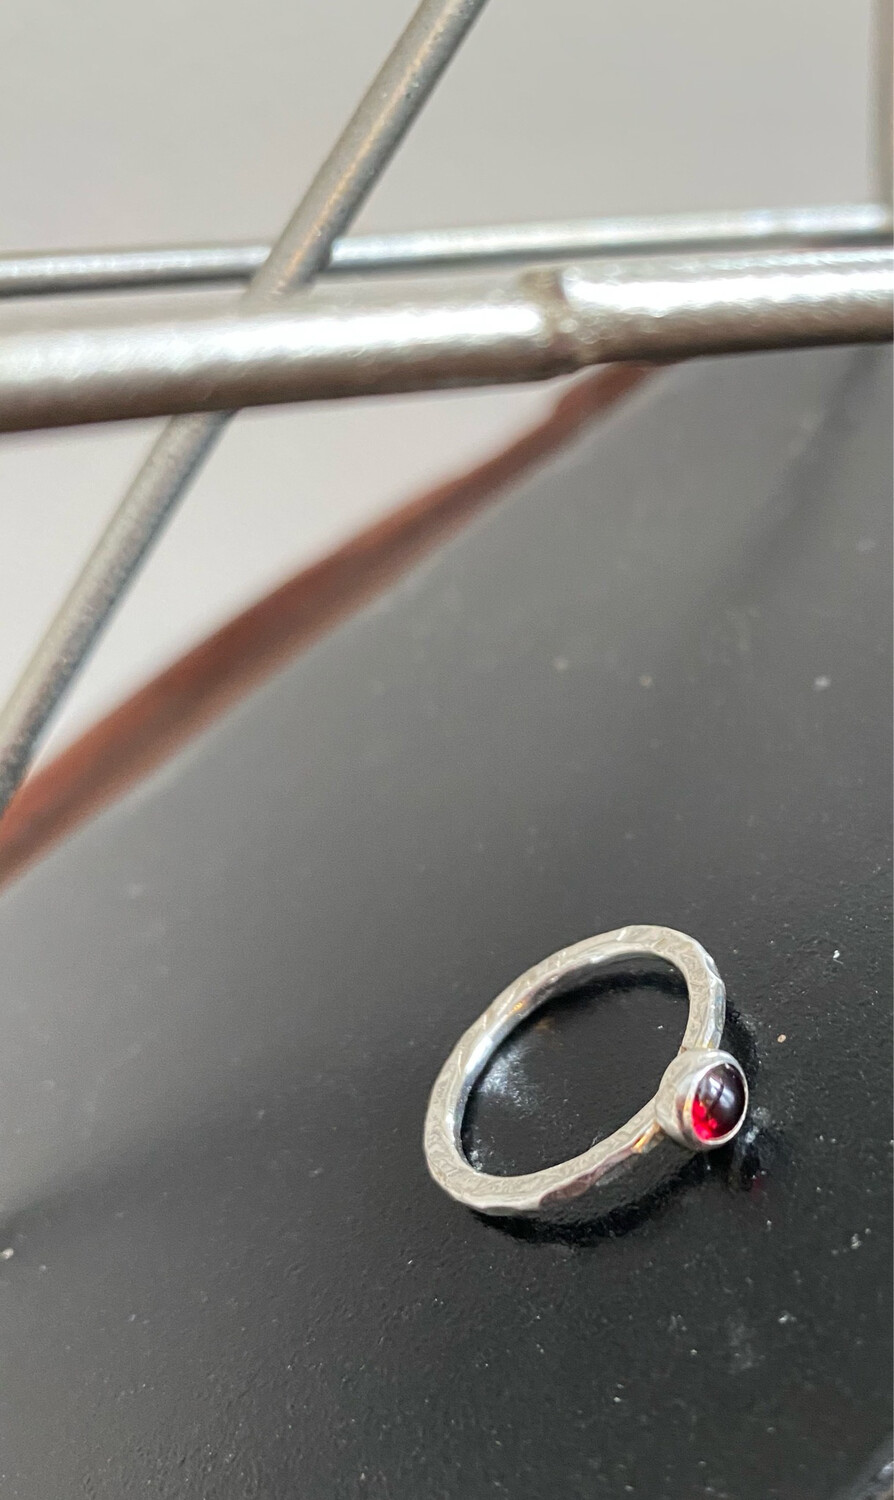 A&A 21 Sterling Silver Hammered Ring With Soldered Red Stone. Size 6, 7